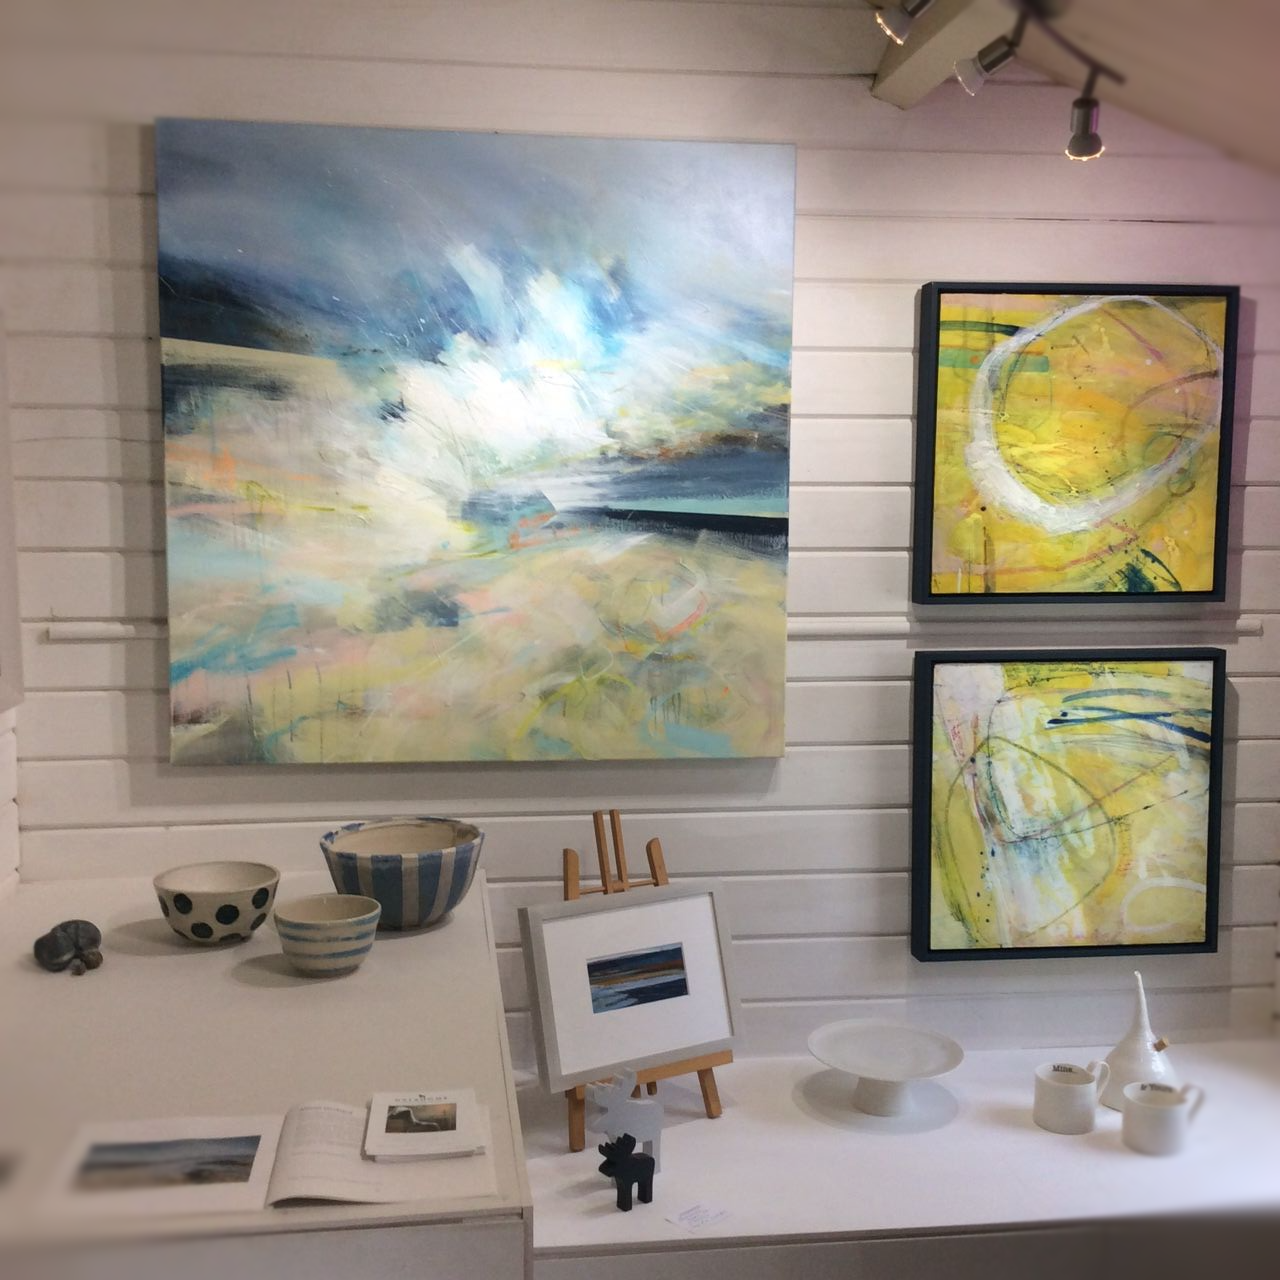 gallery wall with yellow abstract encaustic paintings and large seascape